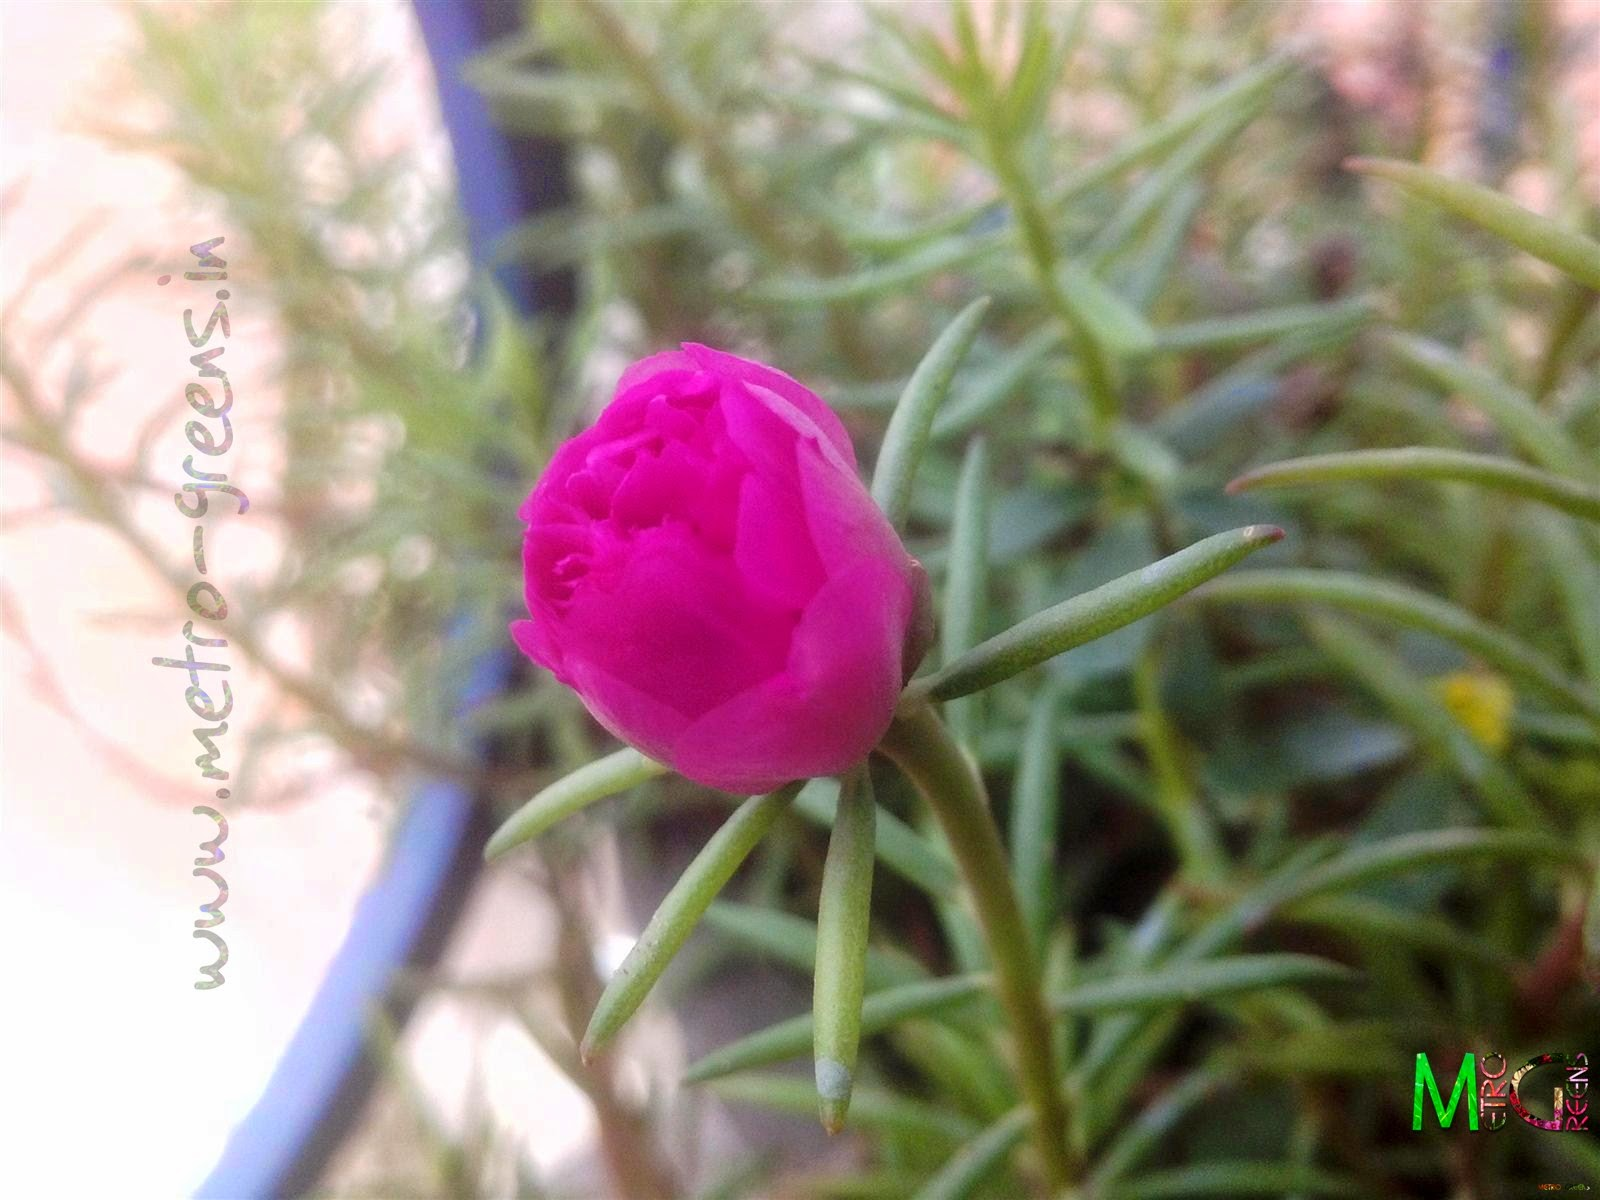 Metro Greens: A pink portulaca (double variety) bud.